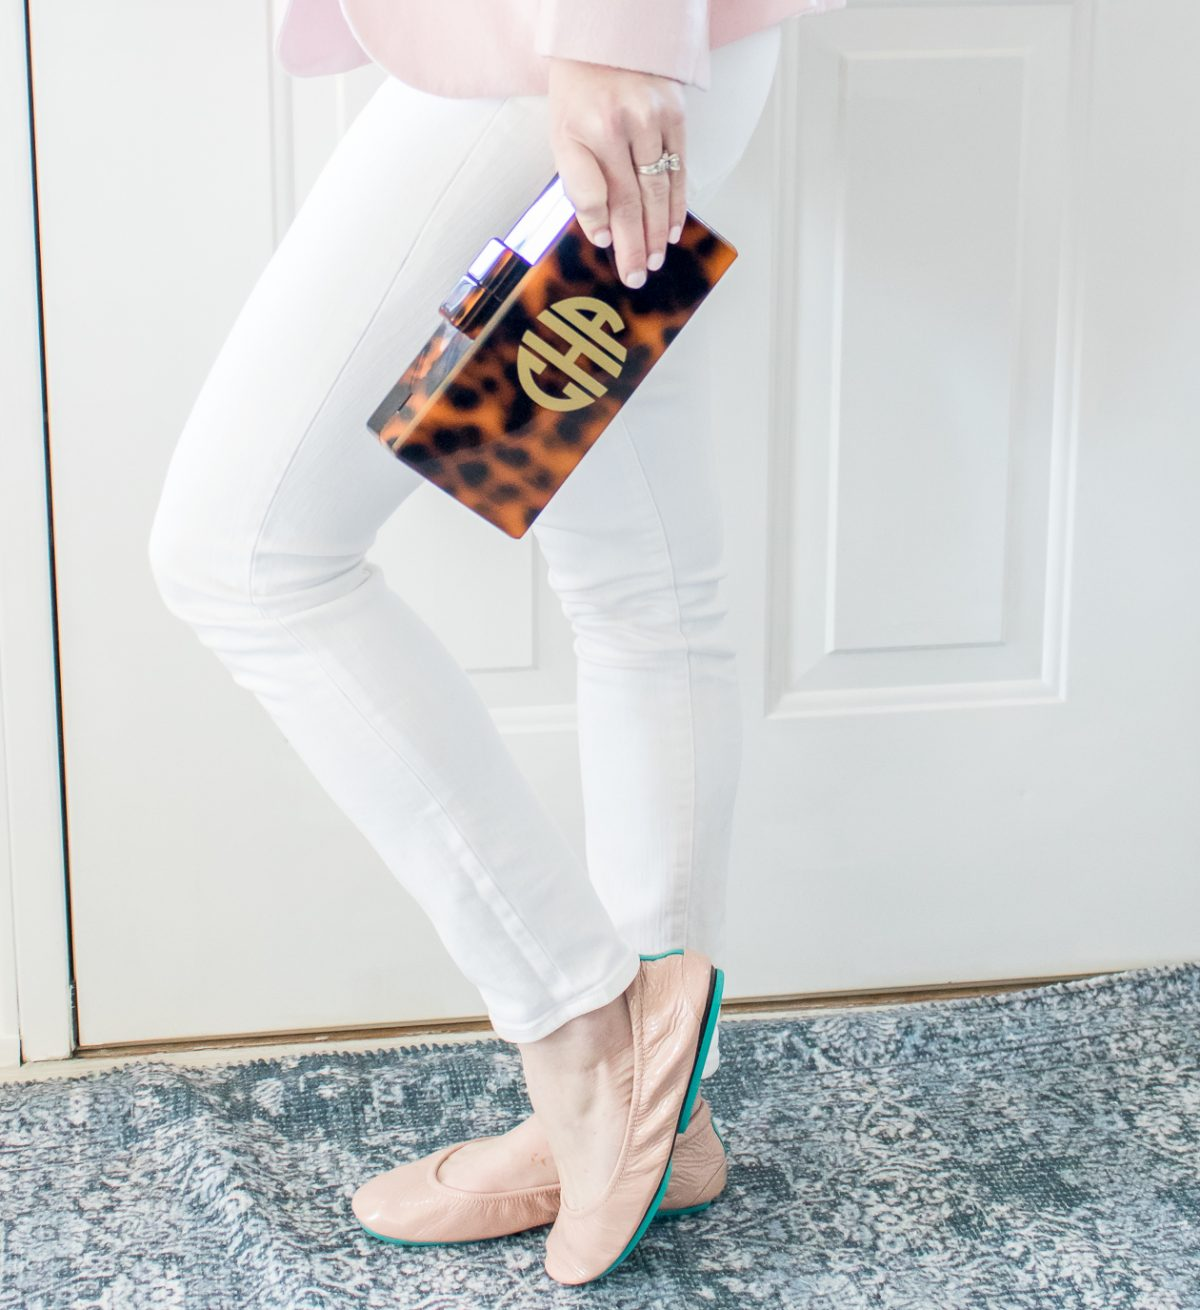 Woman in pink blazer and white pants holding tortoise shell clutch standing in front of a white door on a blue rug with foot popped wearing Tiek Ballet Flats showing